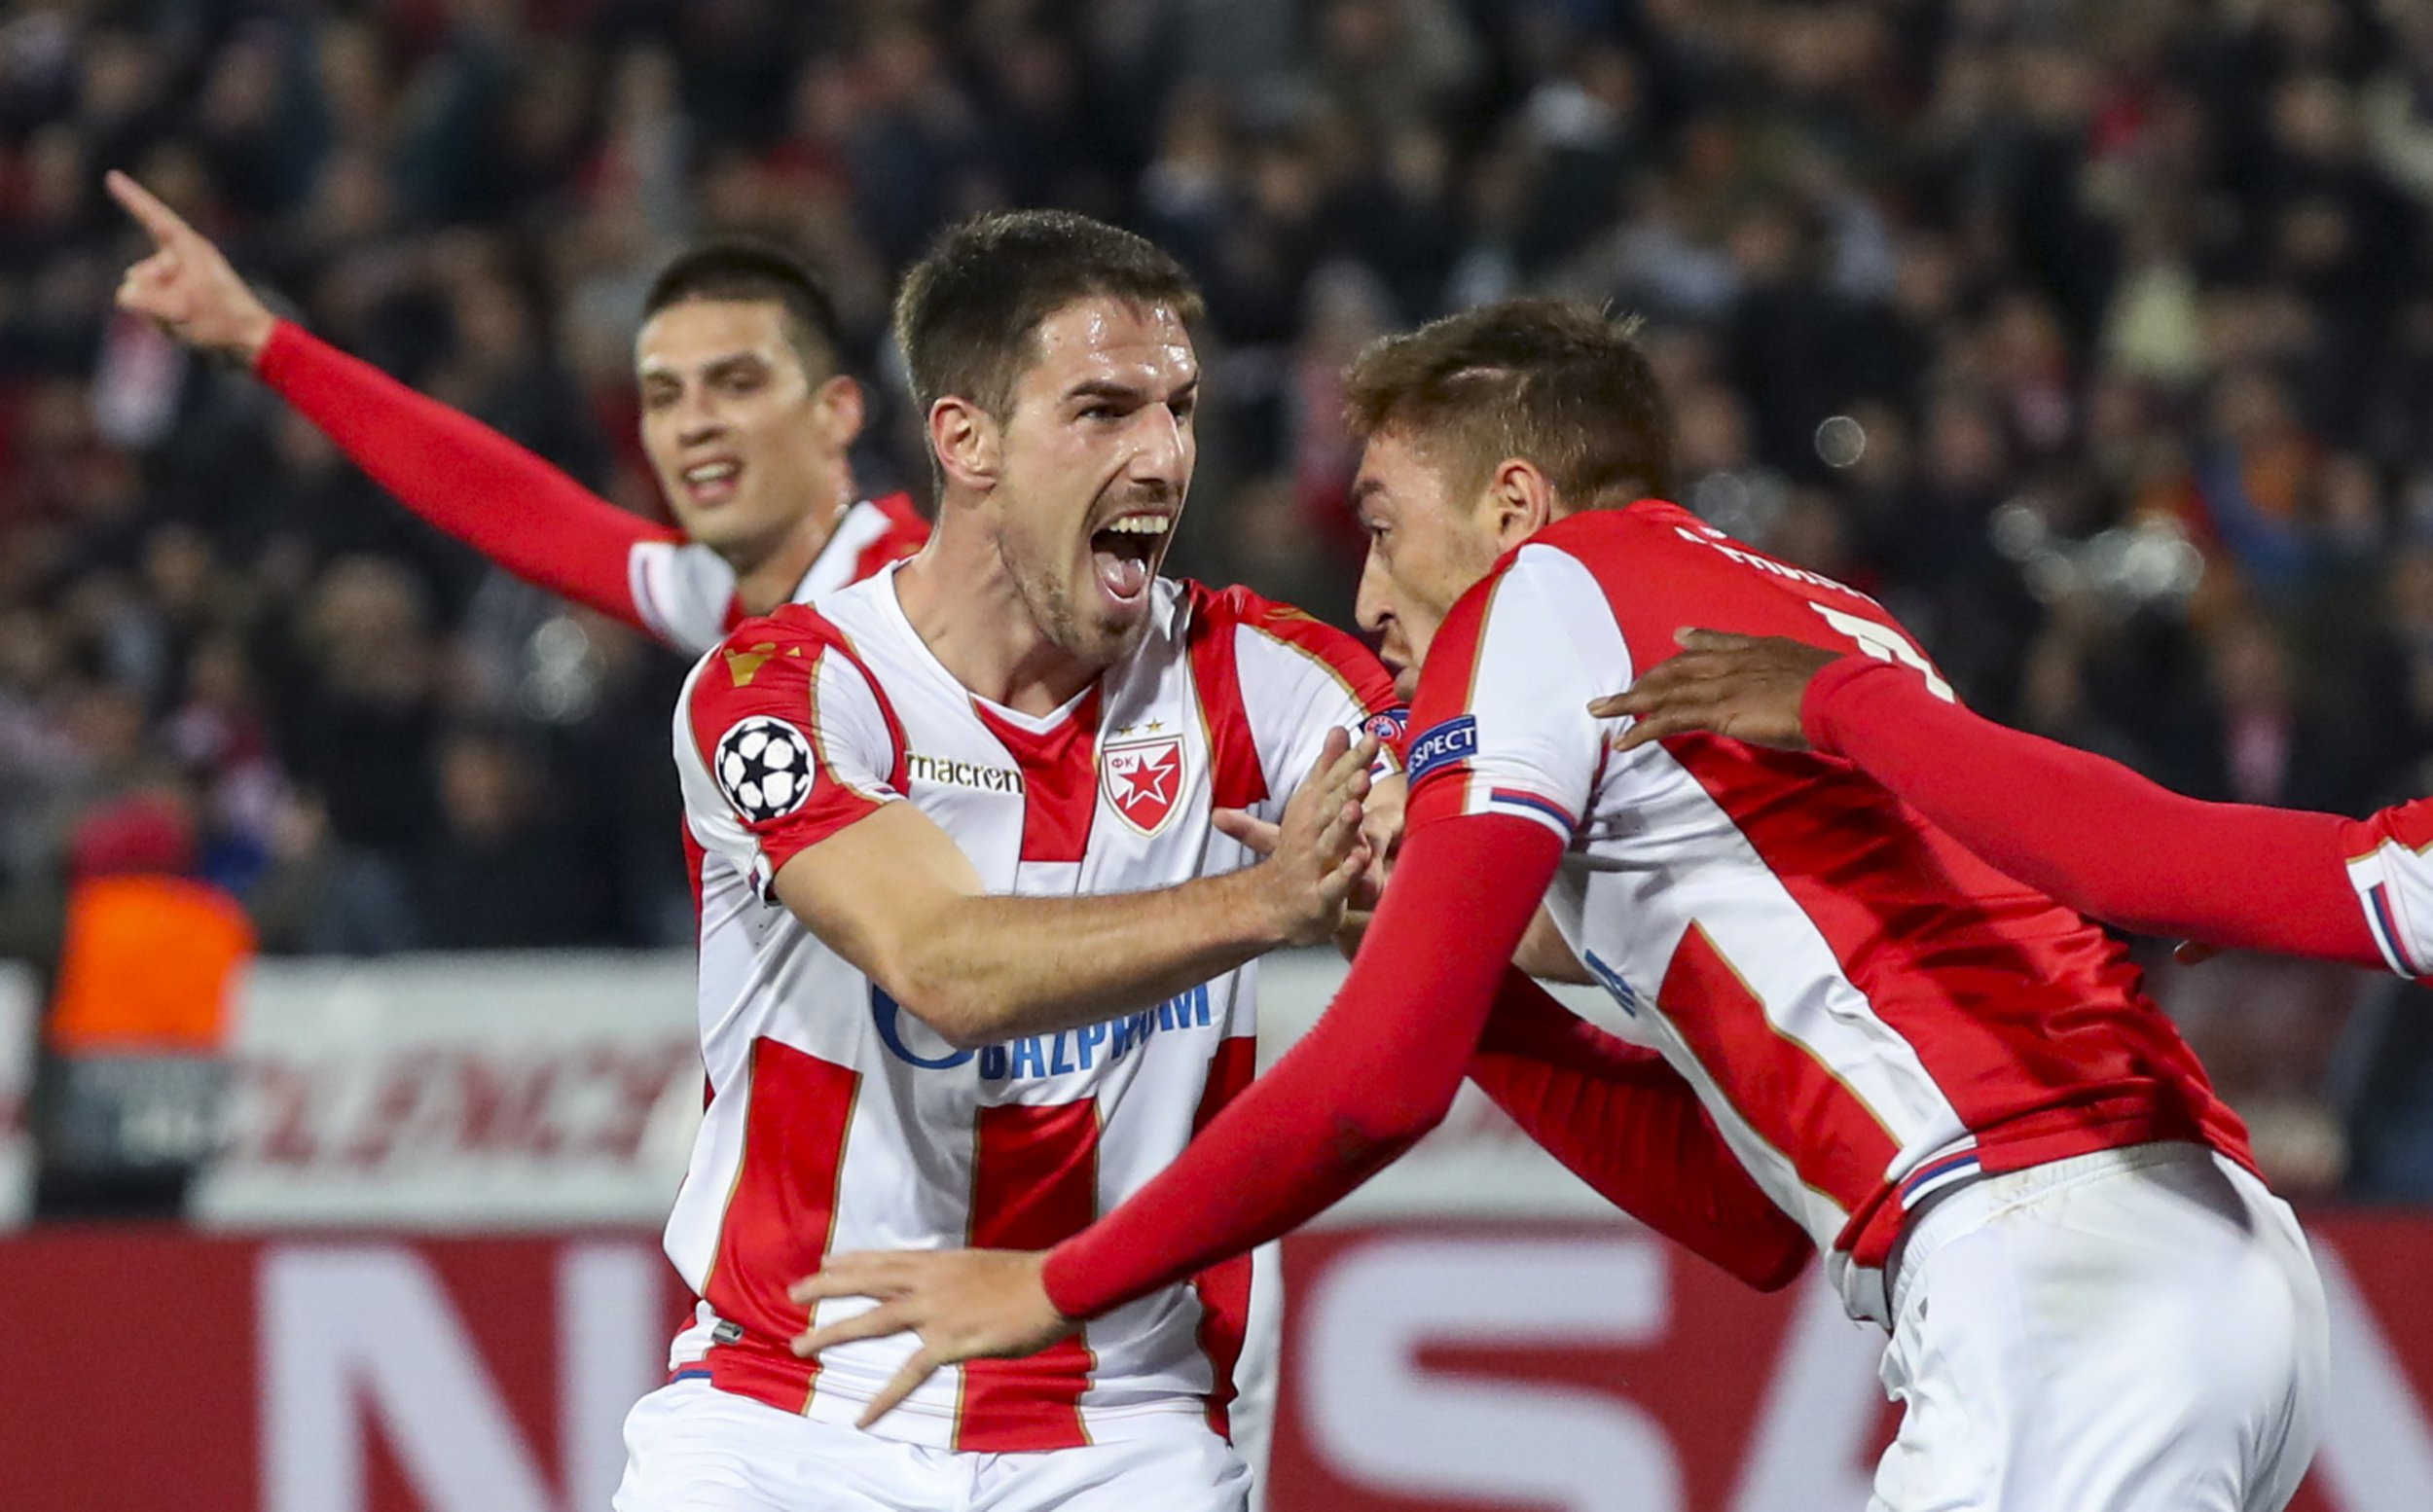 Liverpool's Champions League fate in the balance after Red Star Belgrade defeat